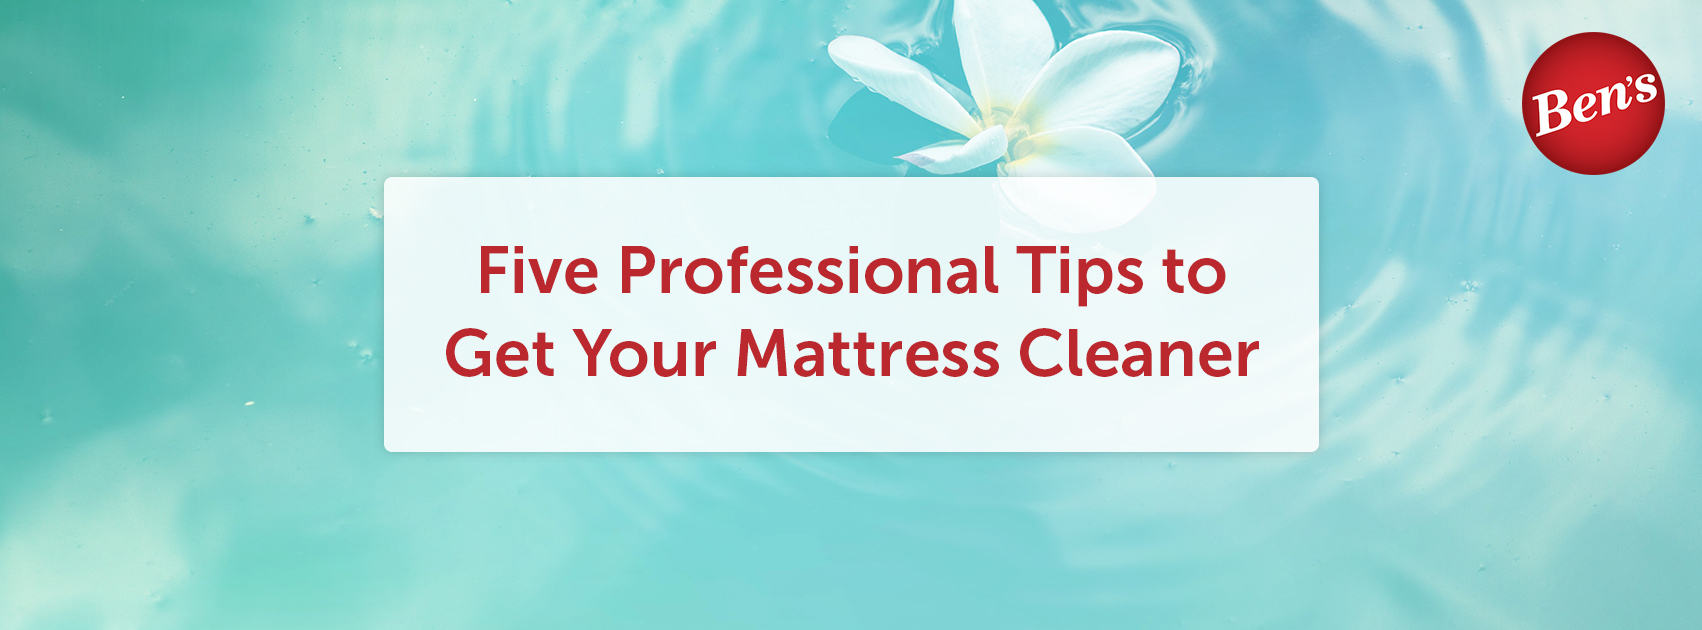 Five Professional Tips to Get Your Mattress Cleaner